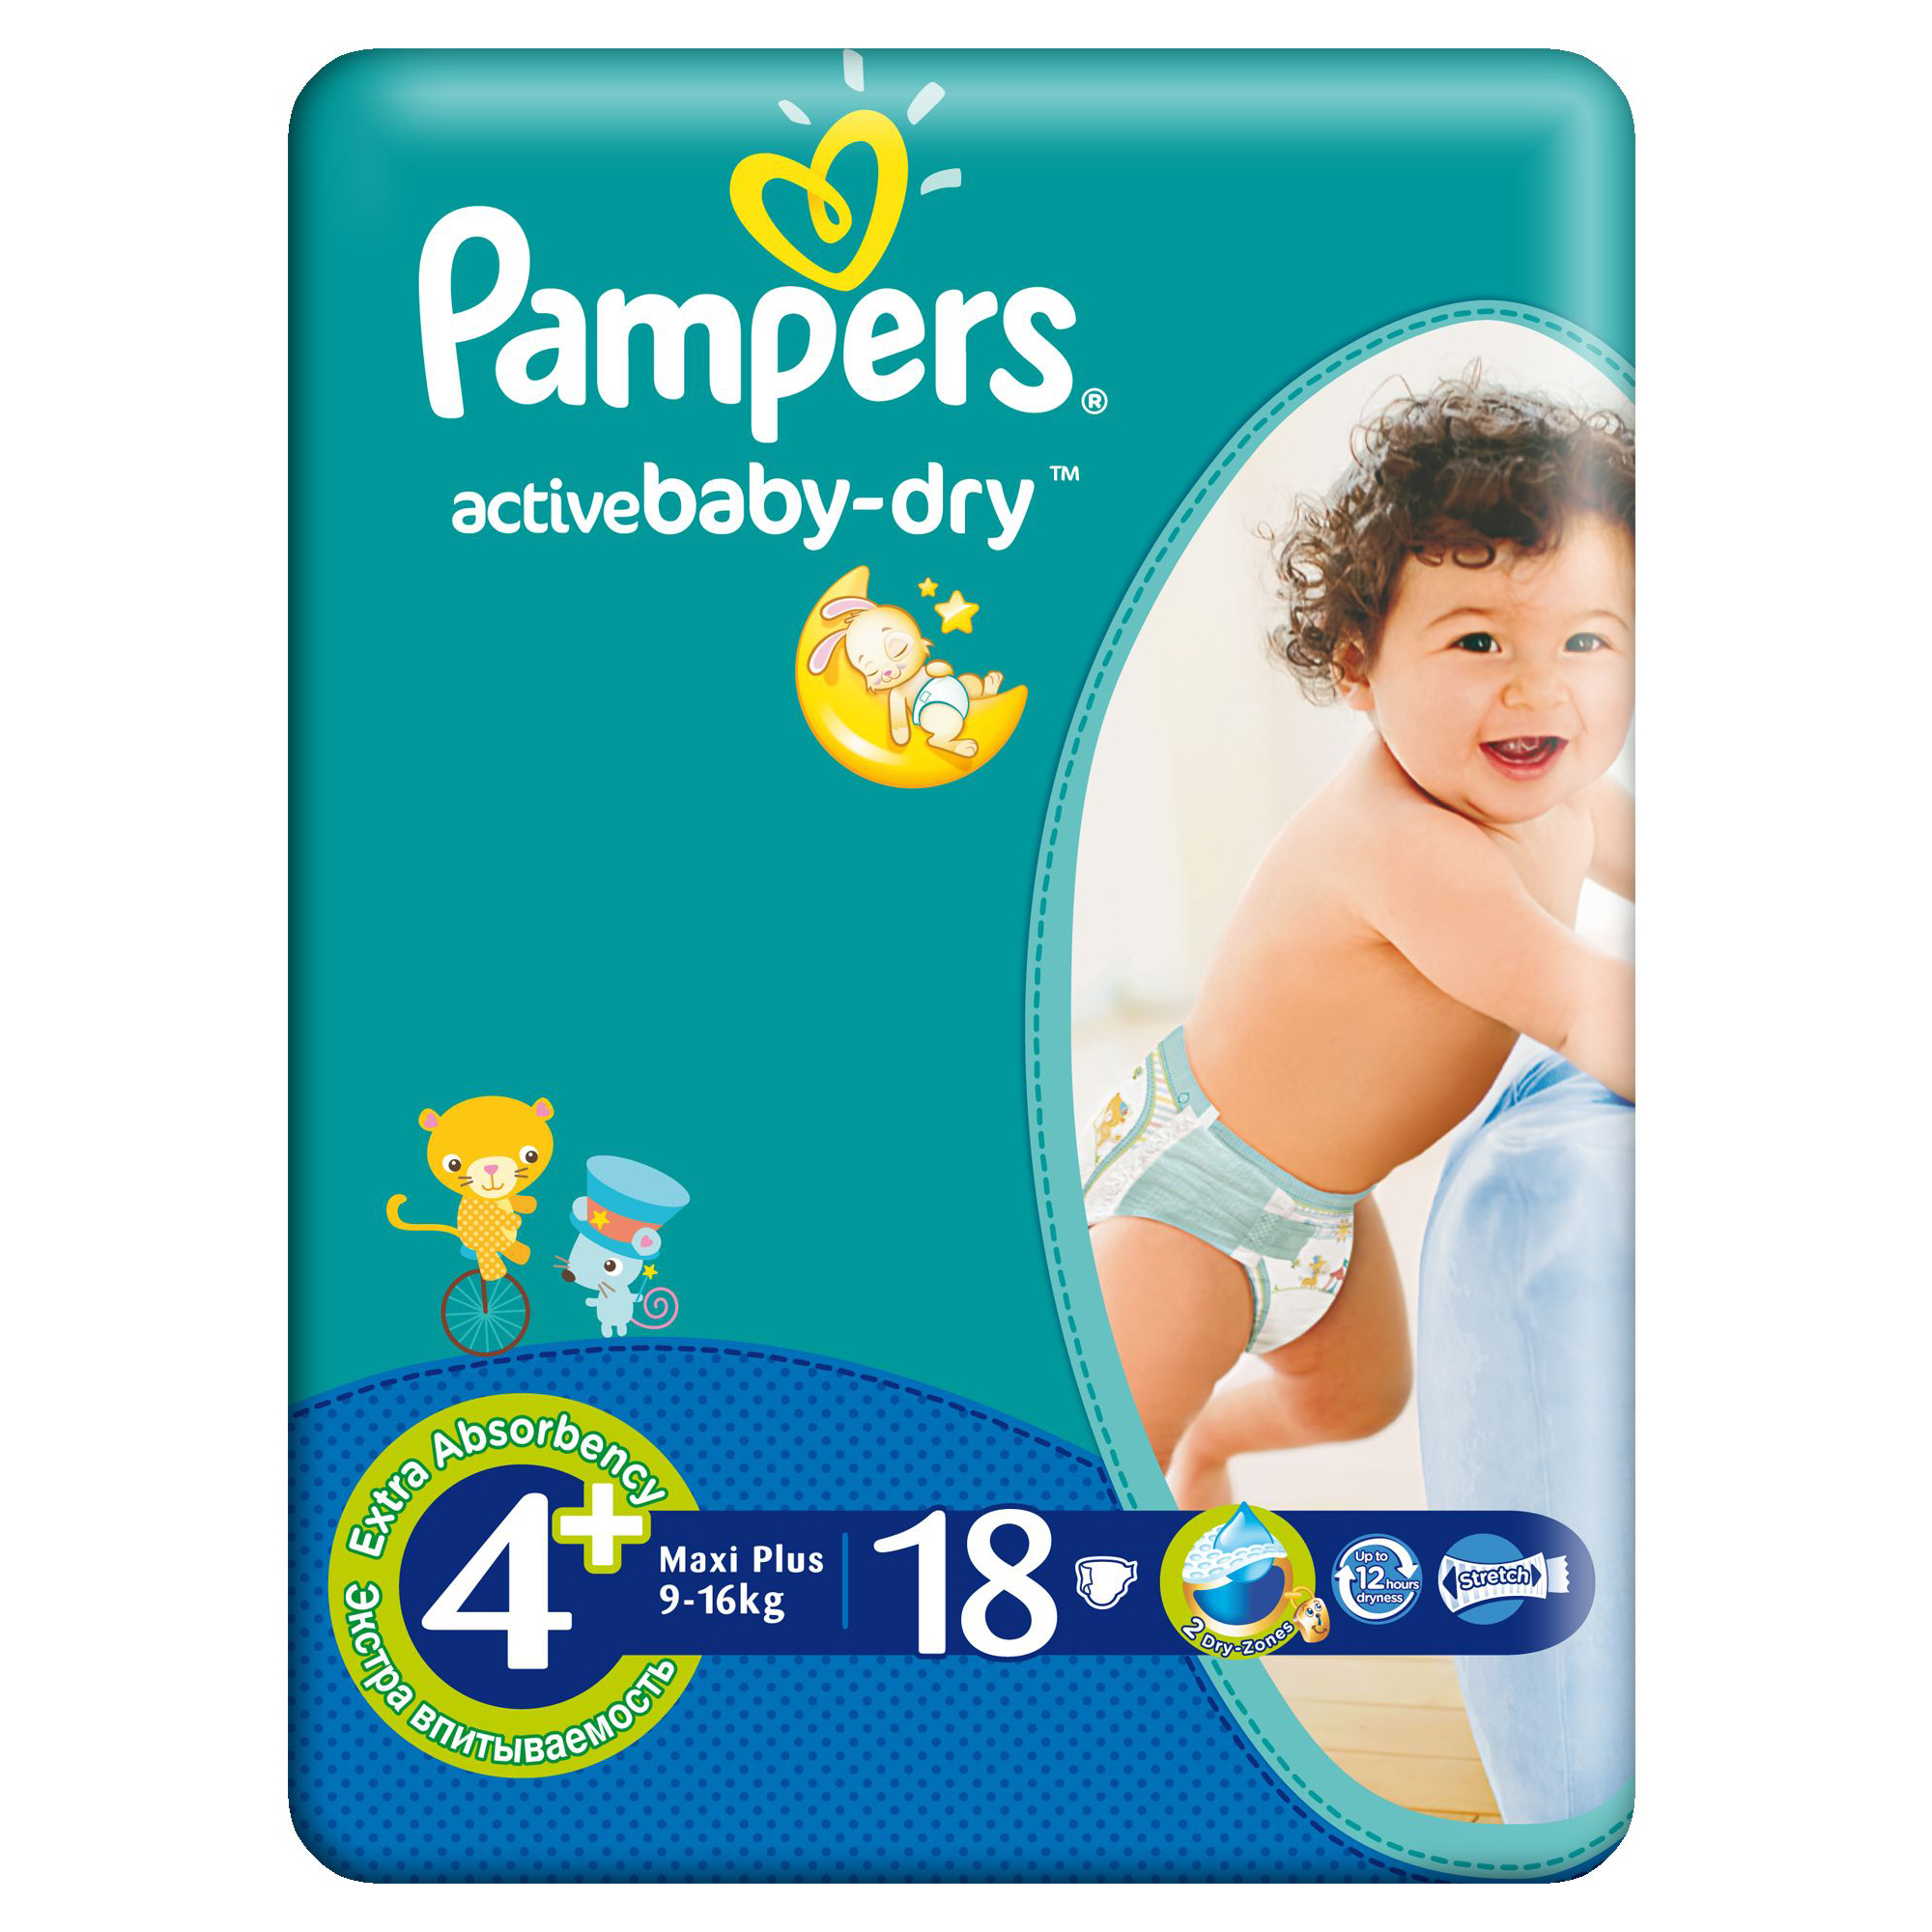 scutece pampers active baby-dry 4+ maxi plus, 18 buc, 9 - 16 kg